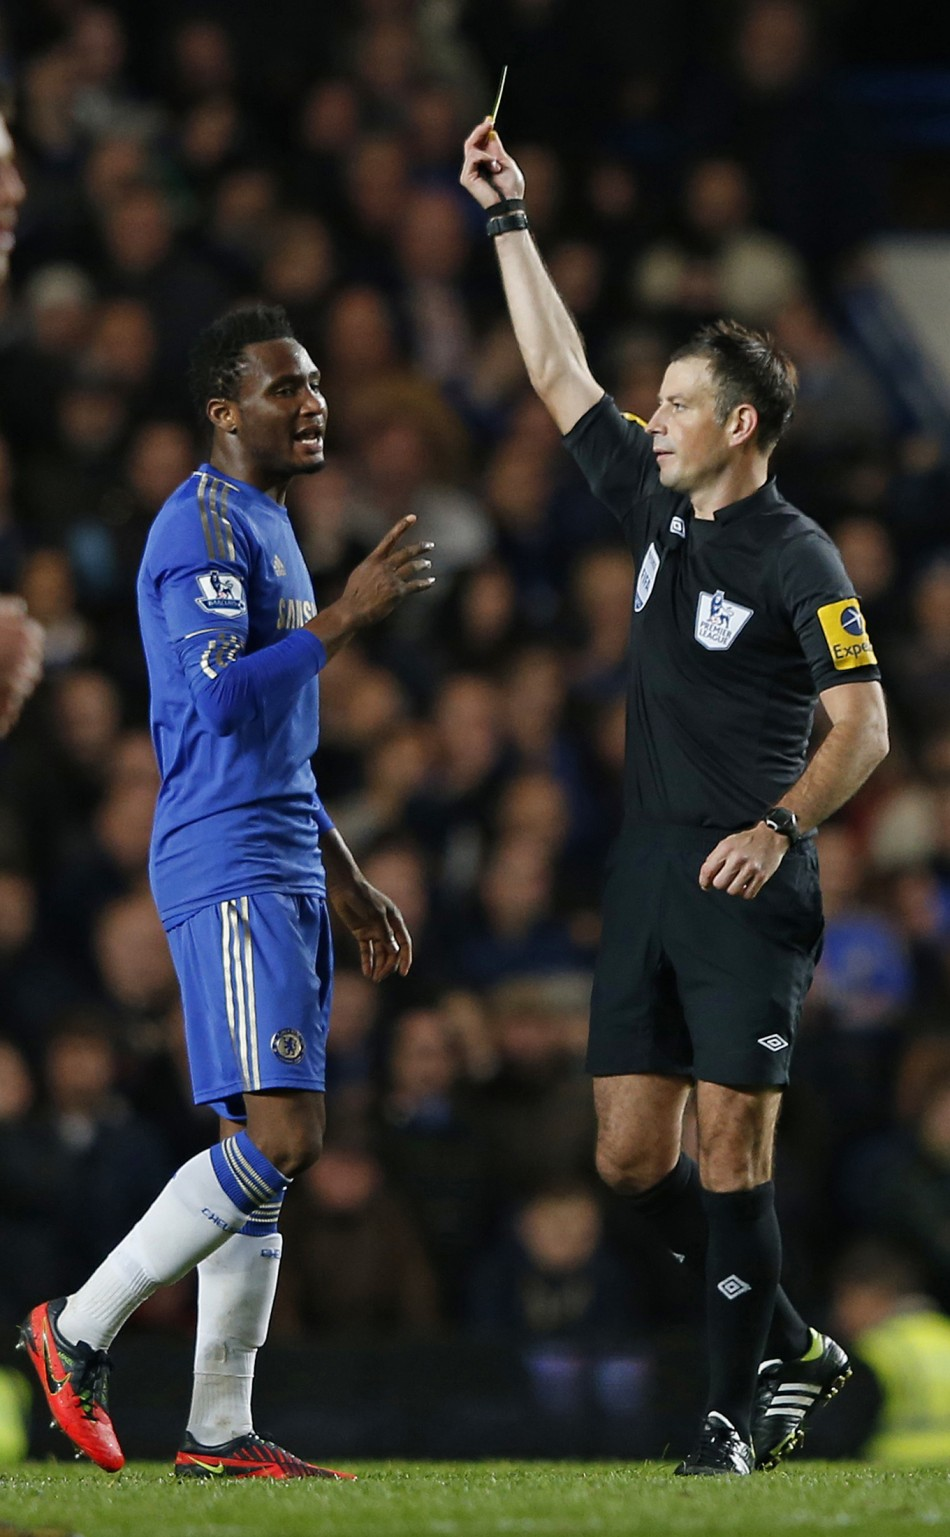 Mark Clattenburg is alleged to have made racial slurs to two Mikel and Mata during the match against Manchester United (Reuters)